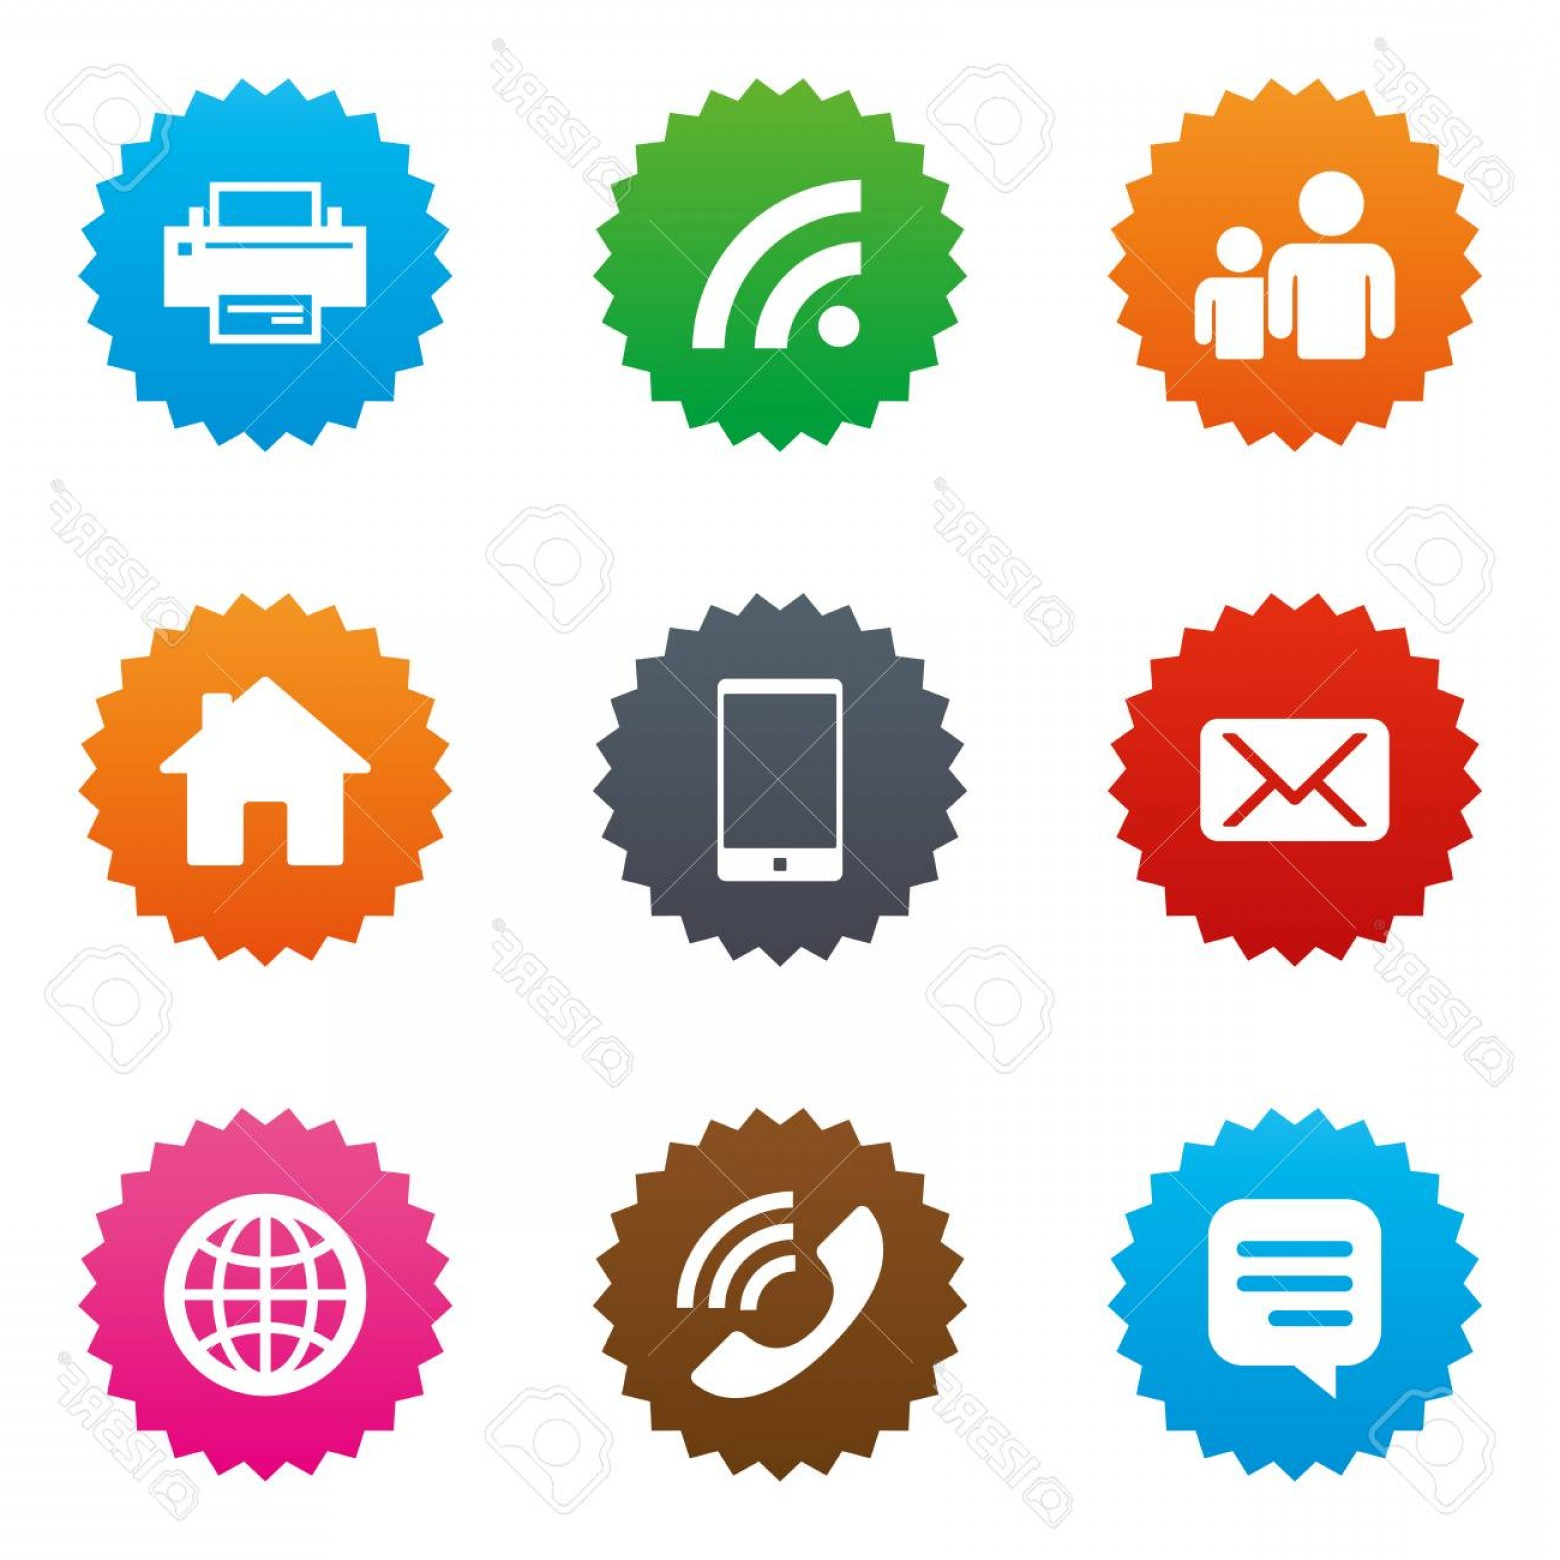 Contact Button Icons Vector Free: Photostock Vector Contact Mail Icons Communication Signs E Mail Chat Message And Phone Call Symbols Stars Label Button